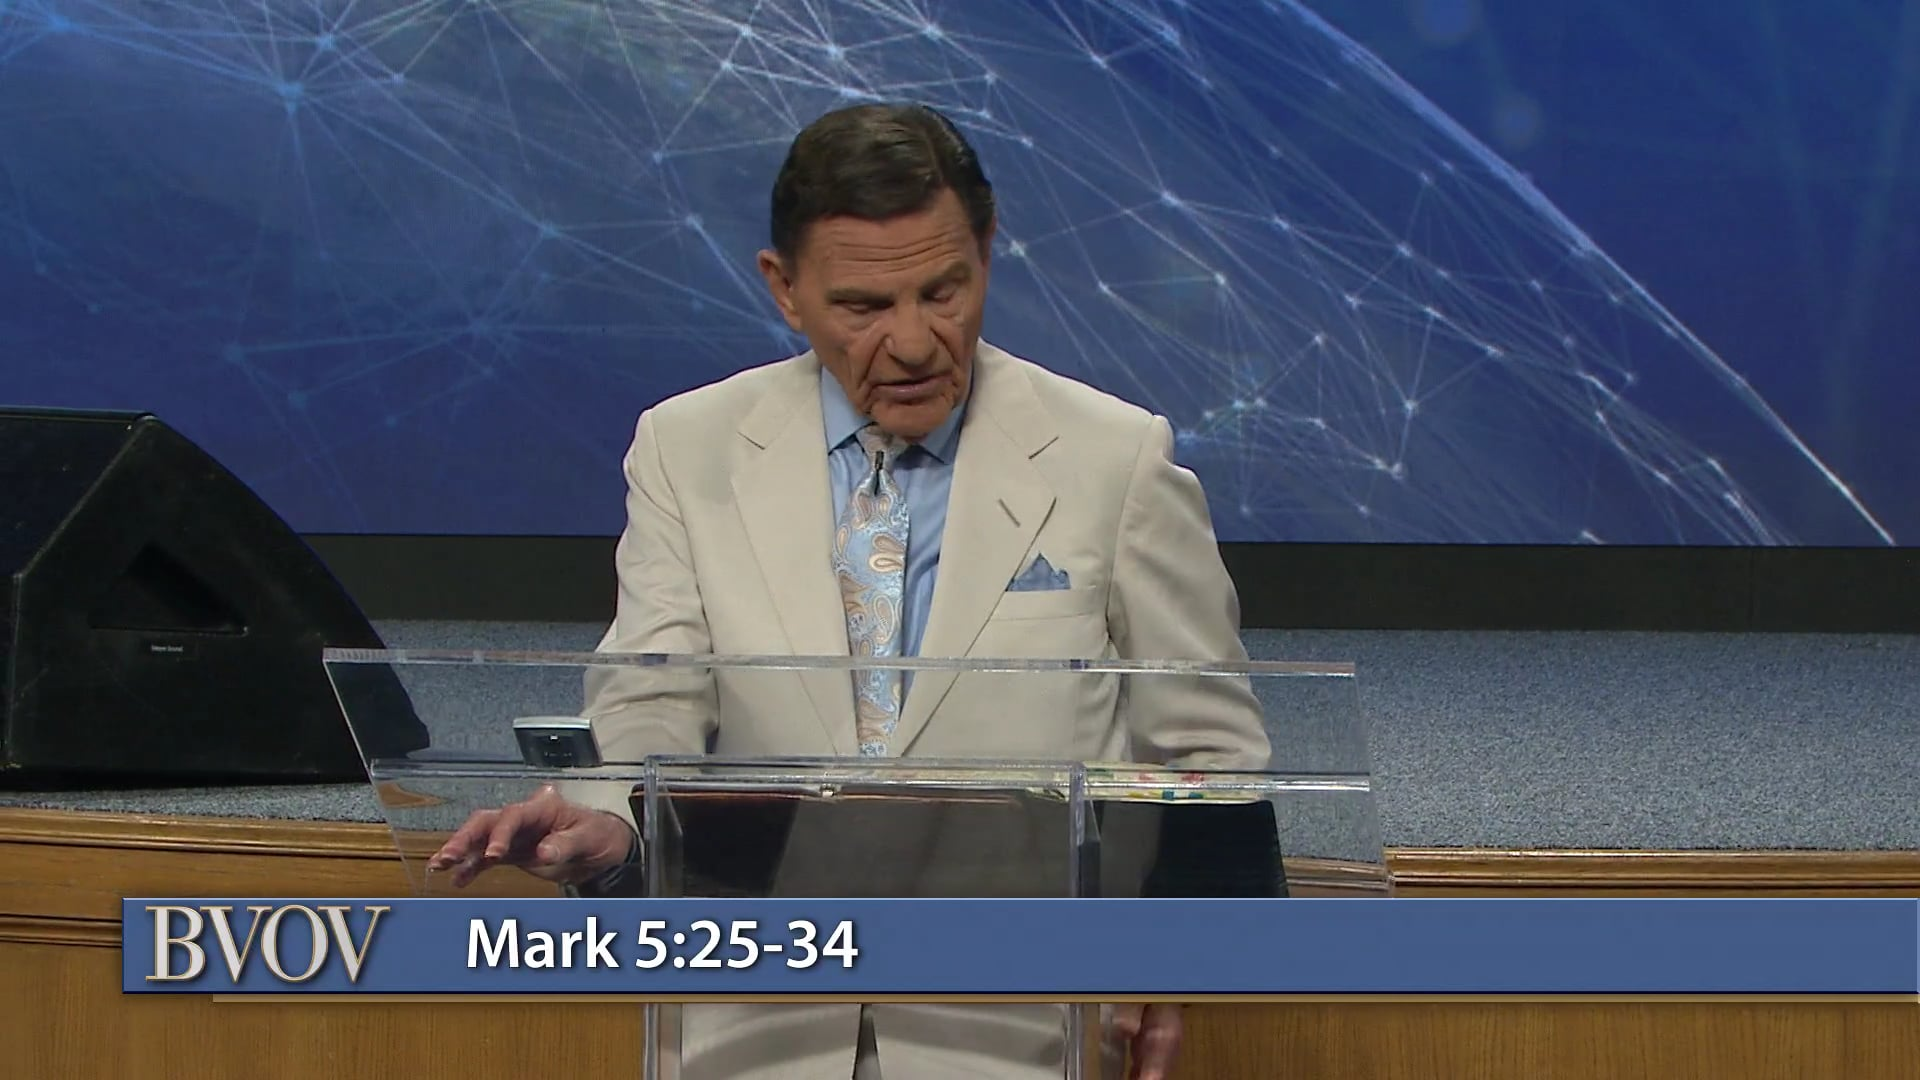 Join Kenneth Copeland on Believer's Voice of Victory as he explains how to build your faith beyond what you've ever imagined! When you make a firm and solid decision to put The WORD of God first place in your life every day, you will activate powerful faith. Don't settle for less—take a step toward living in mountain-moving faith today!